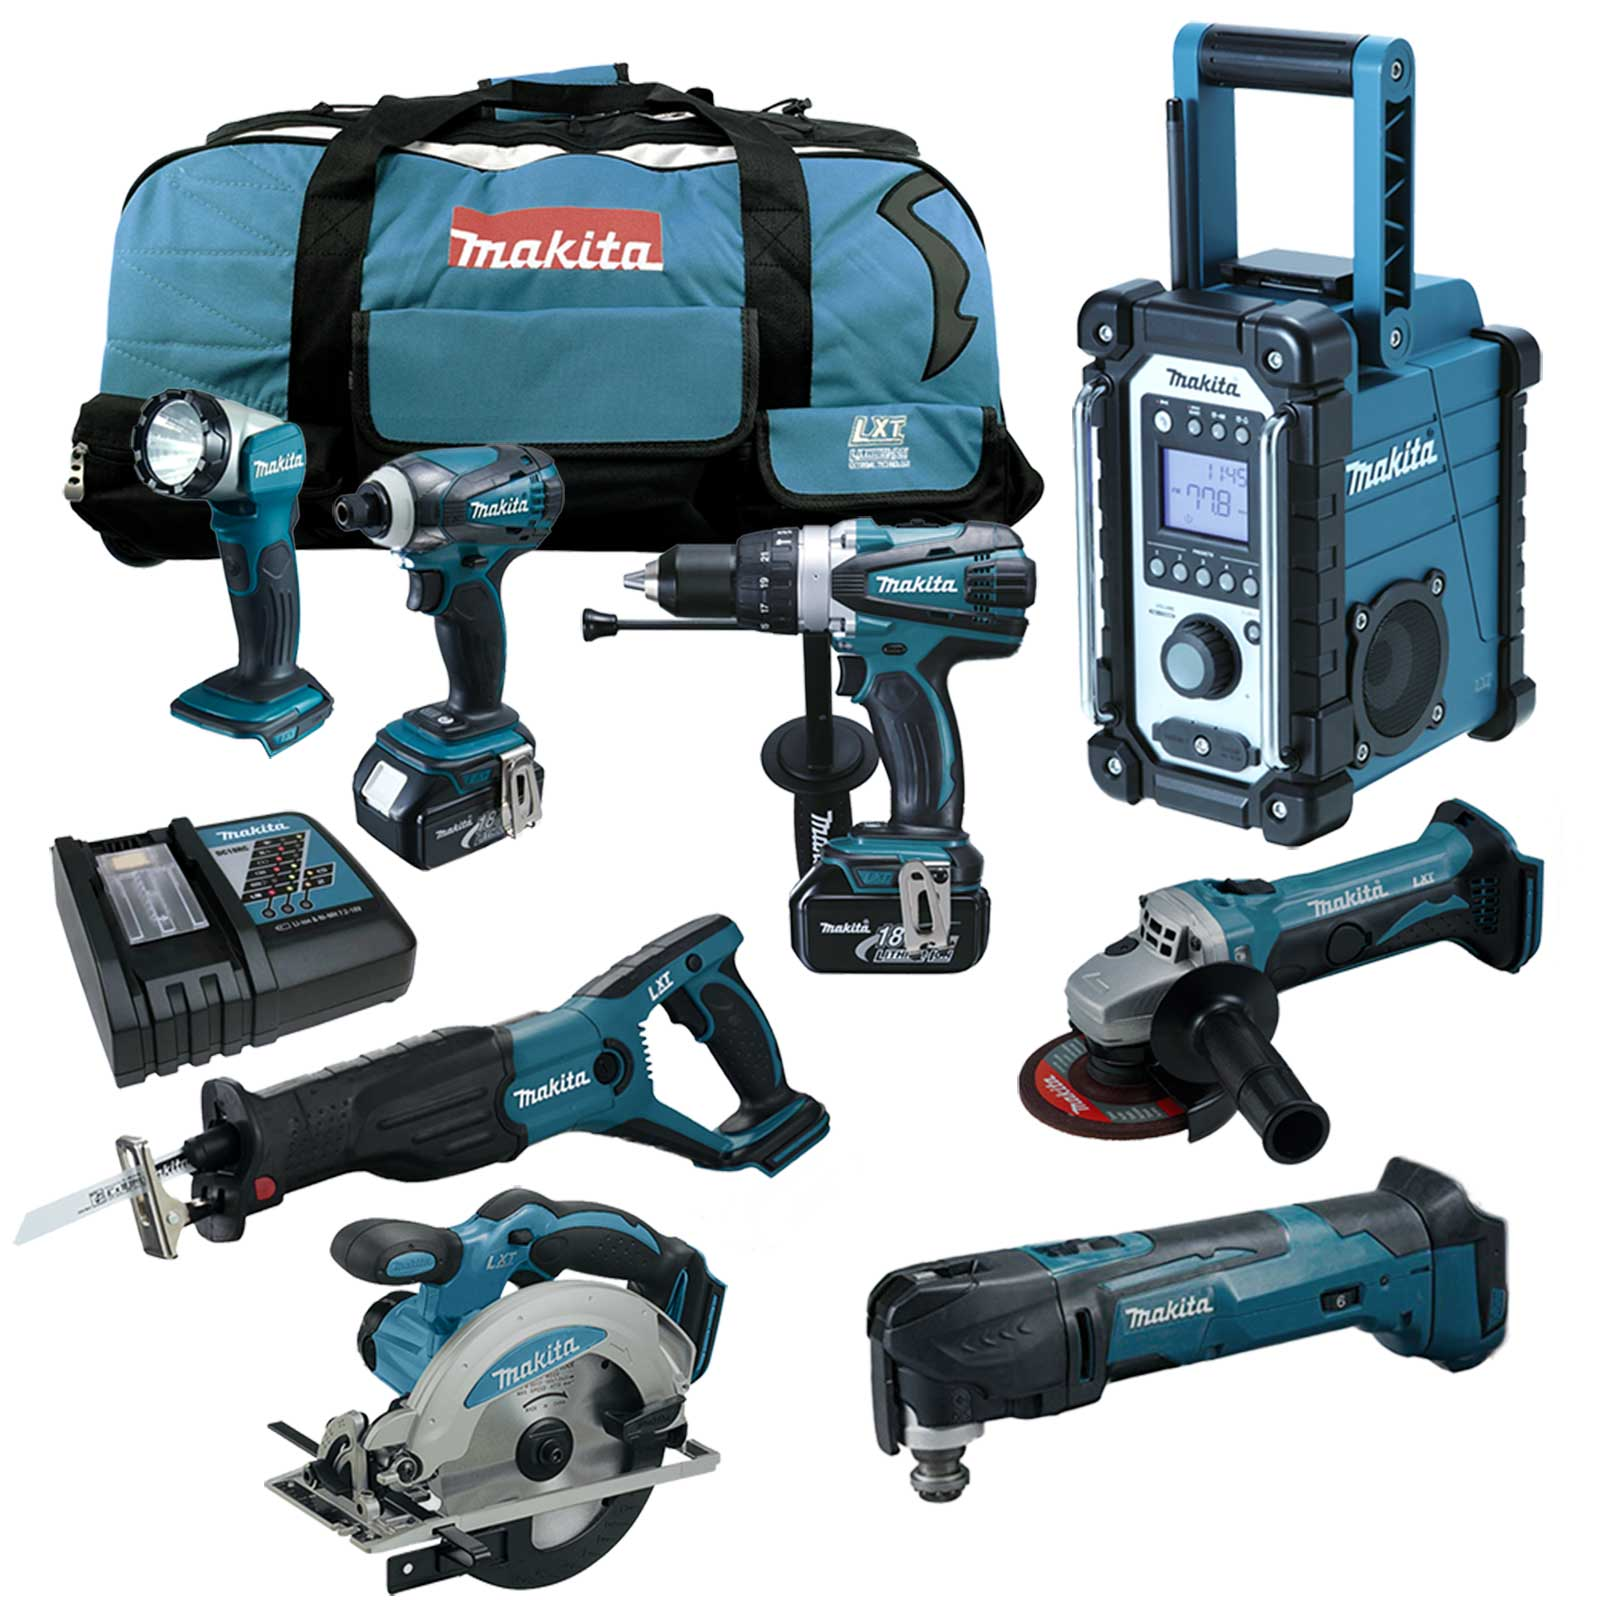 makita dtm51 rt1j3 multitool lxt 18v akku werkzeug set. Black Bedroom Furniture Sets. Home Design Ideas